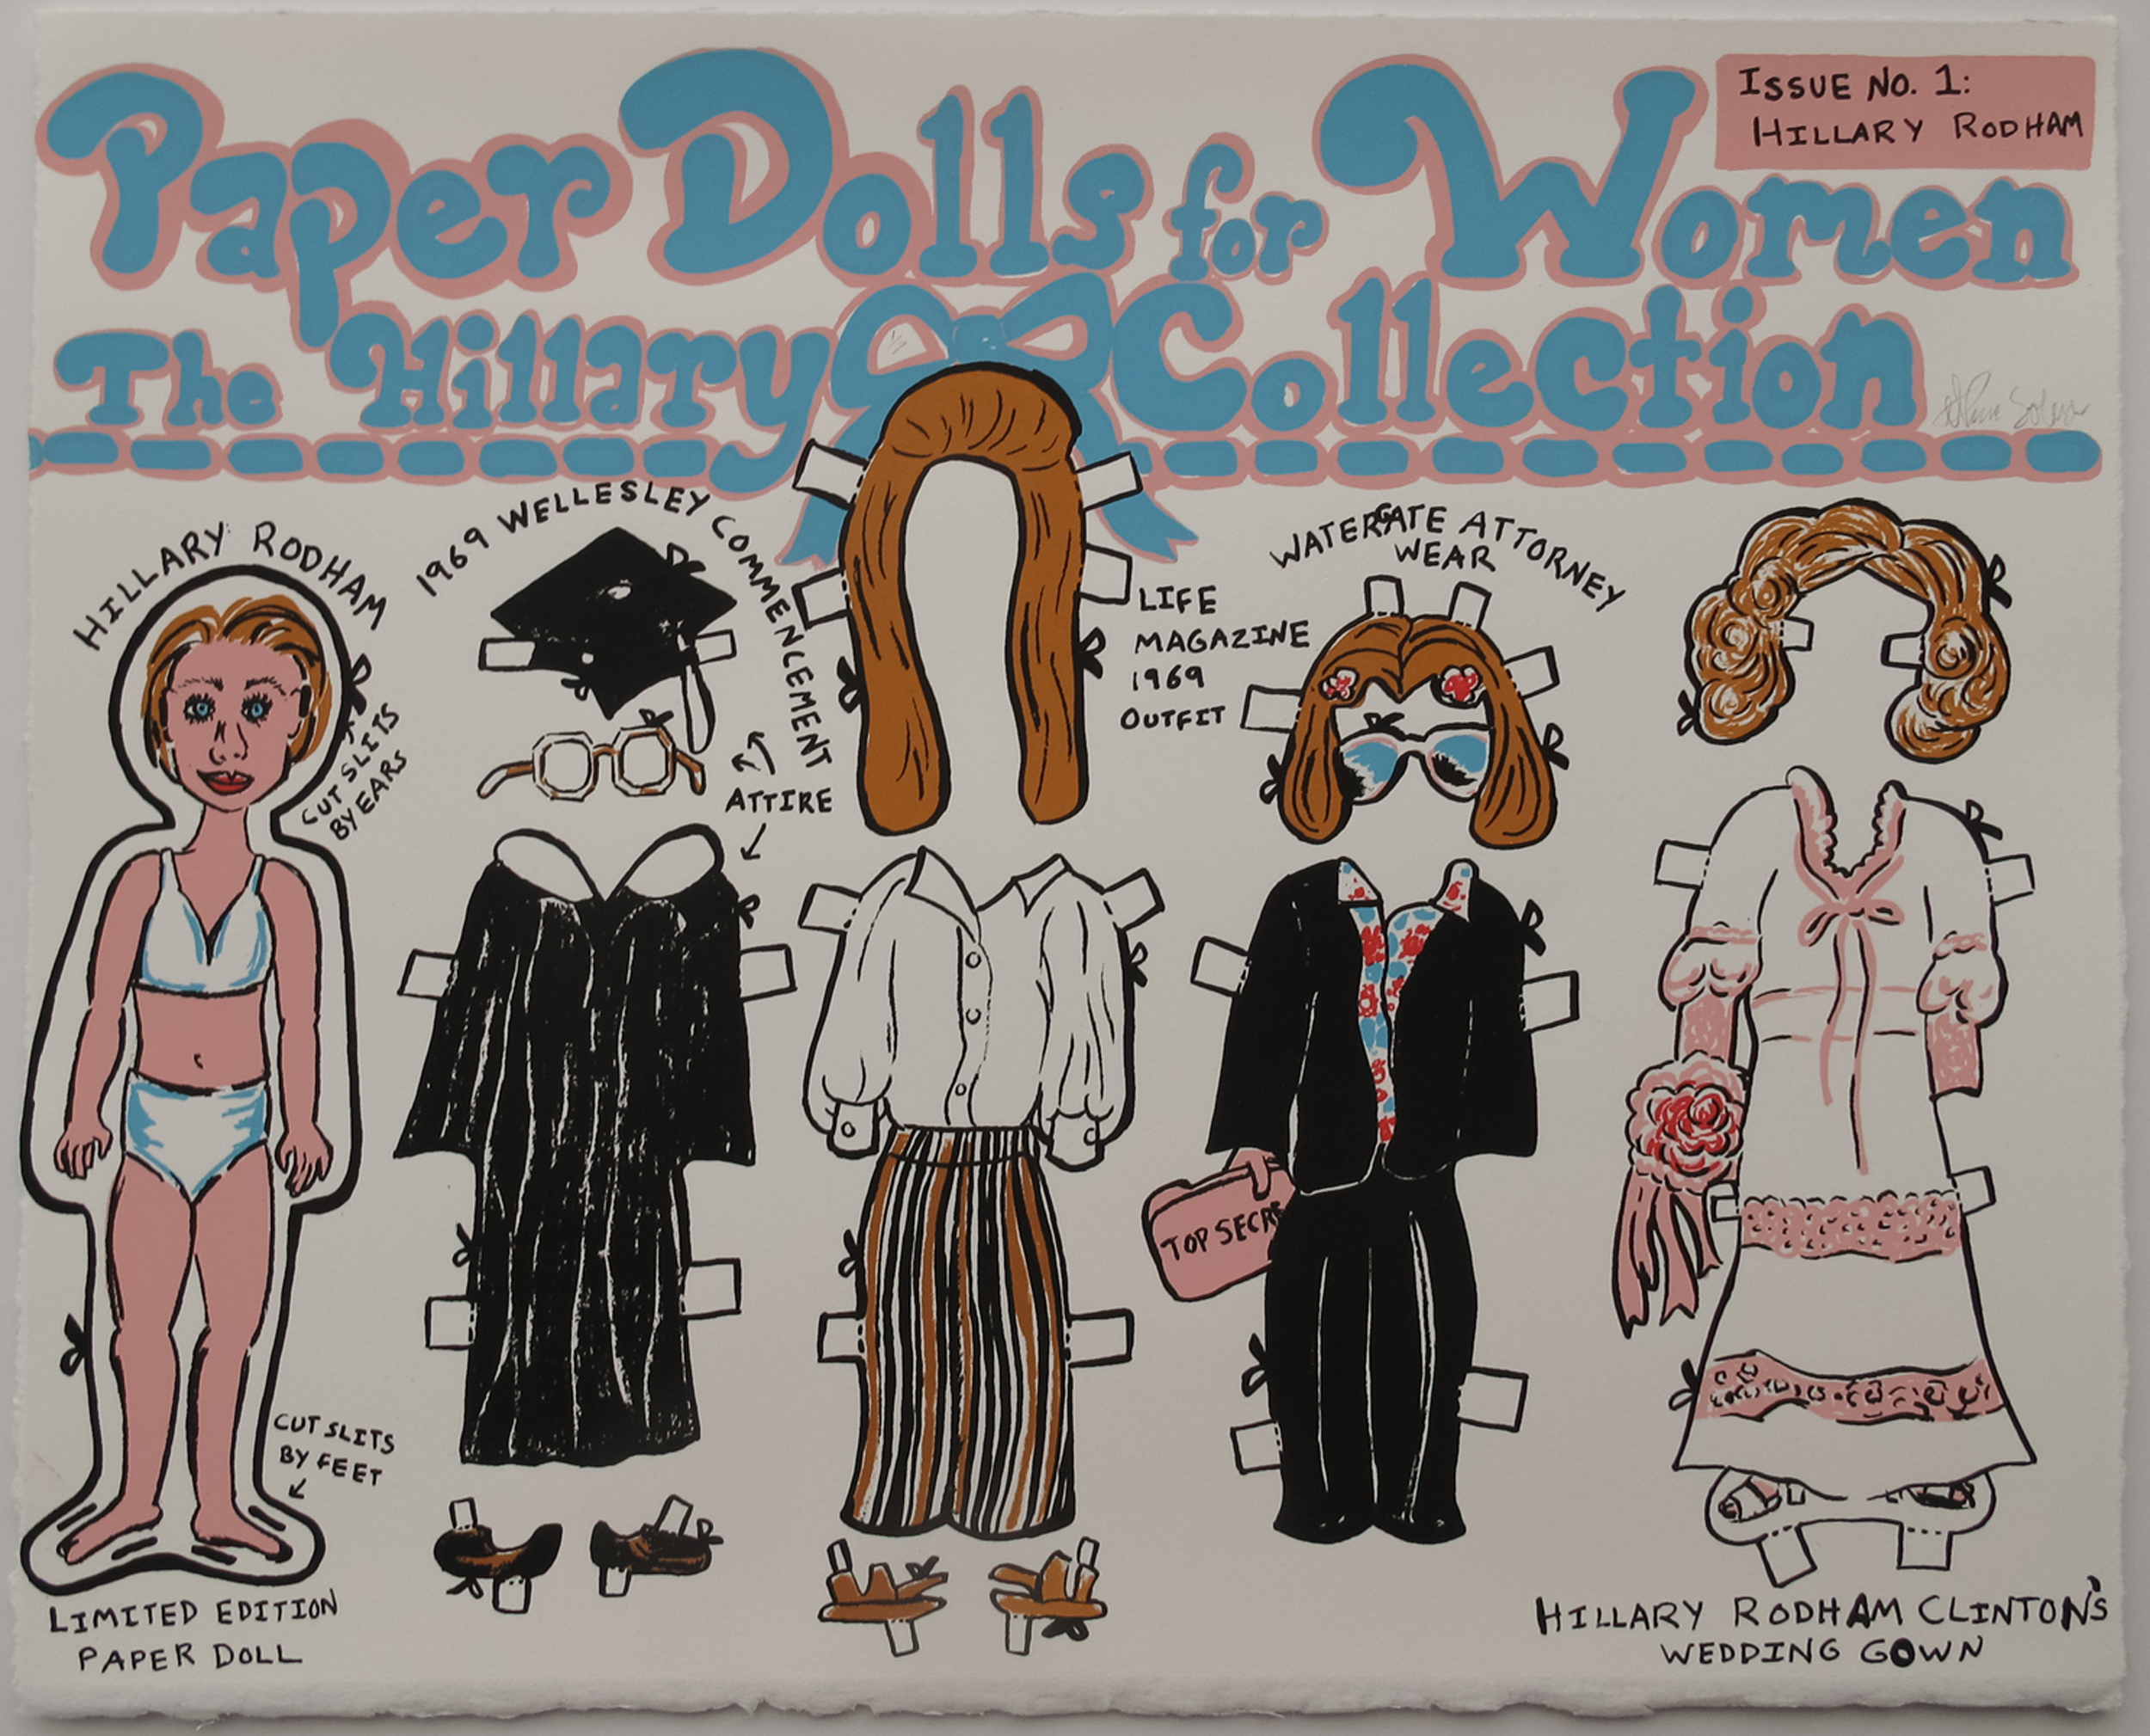 Nicole Soley, Paper Dolls for Women: The Hillary Collection, Issue No. 1, screenprint